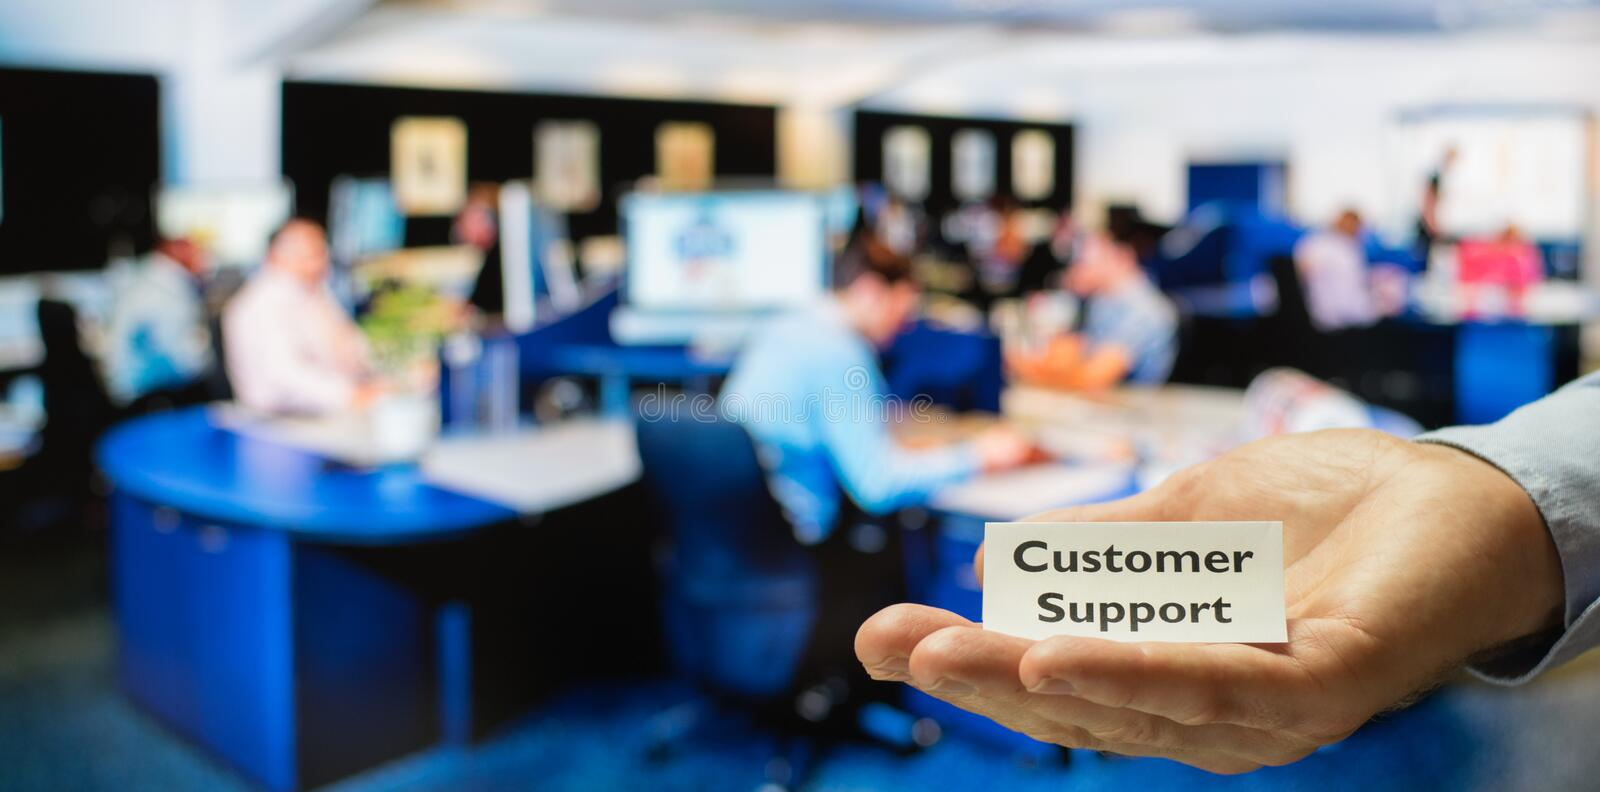 Customer support center royalty free stock image